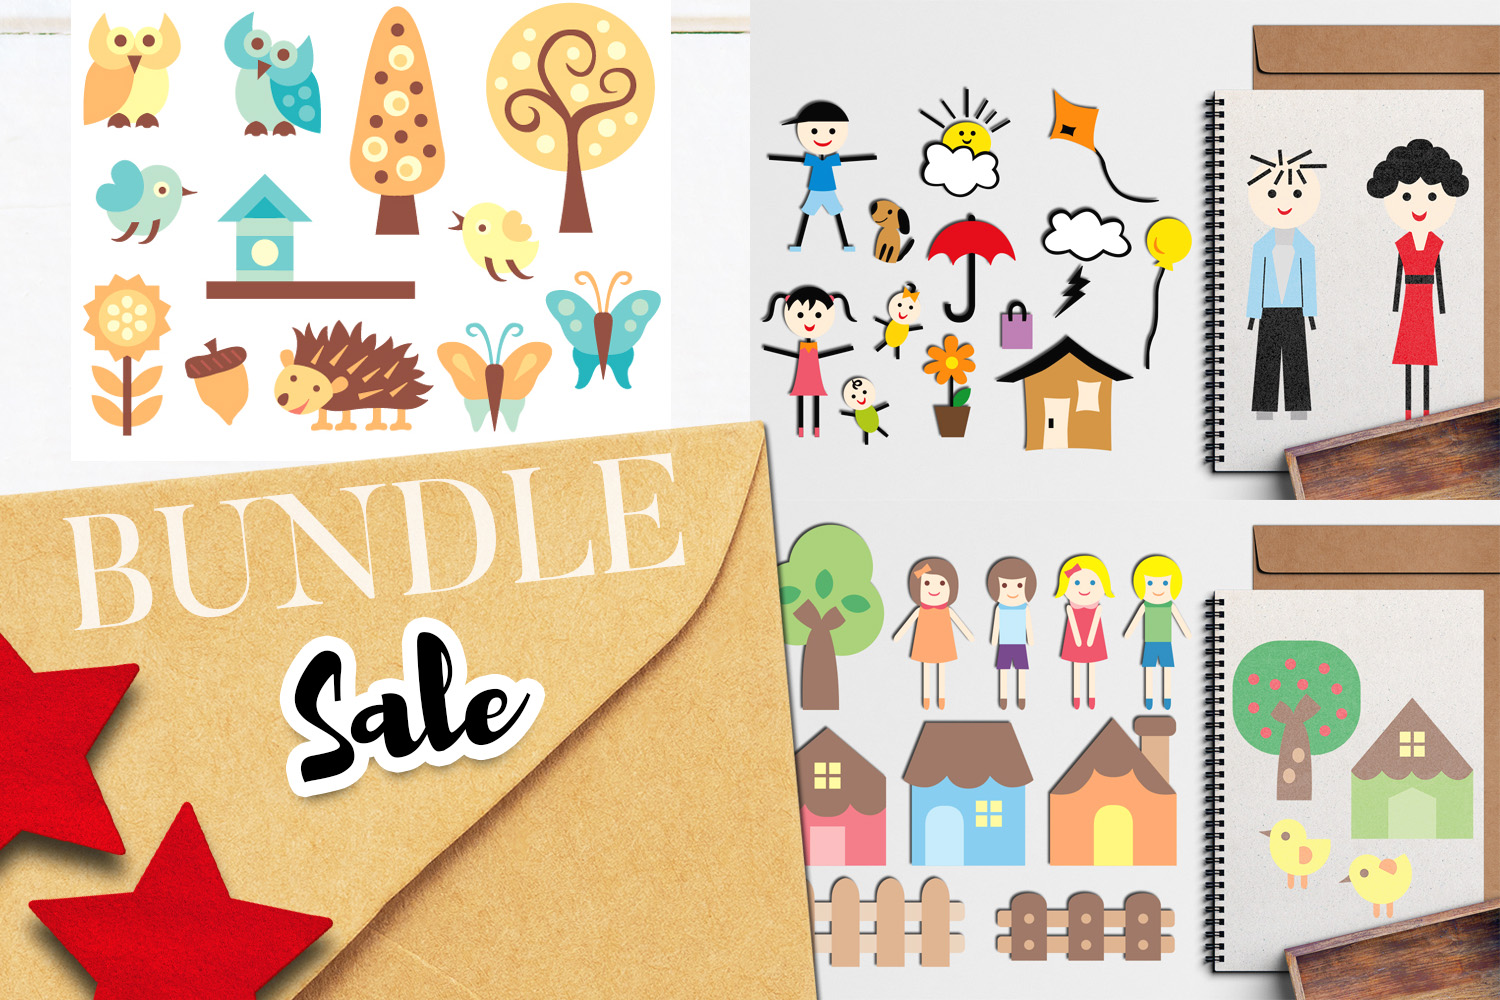 Download Free House And Family Bundle Graphic By Revidevi Creative Fabrica for Cricut Explore, Silhouette and other cutting machines.